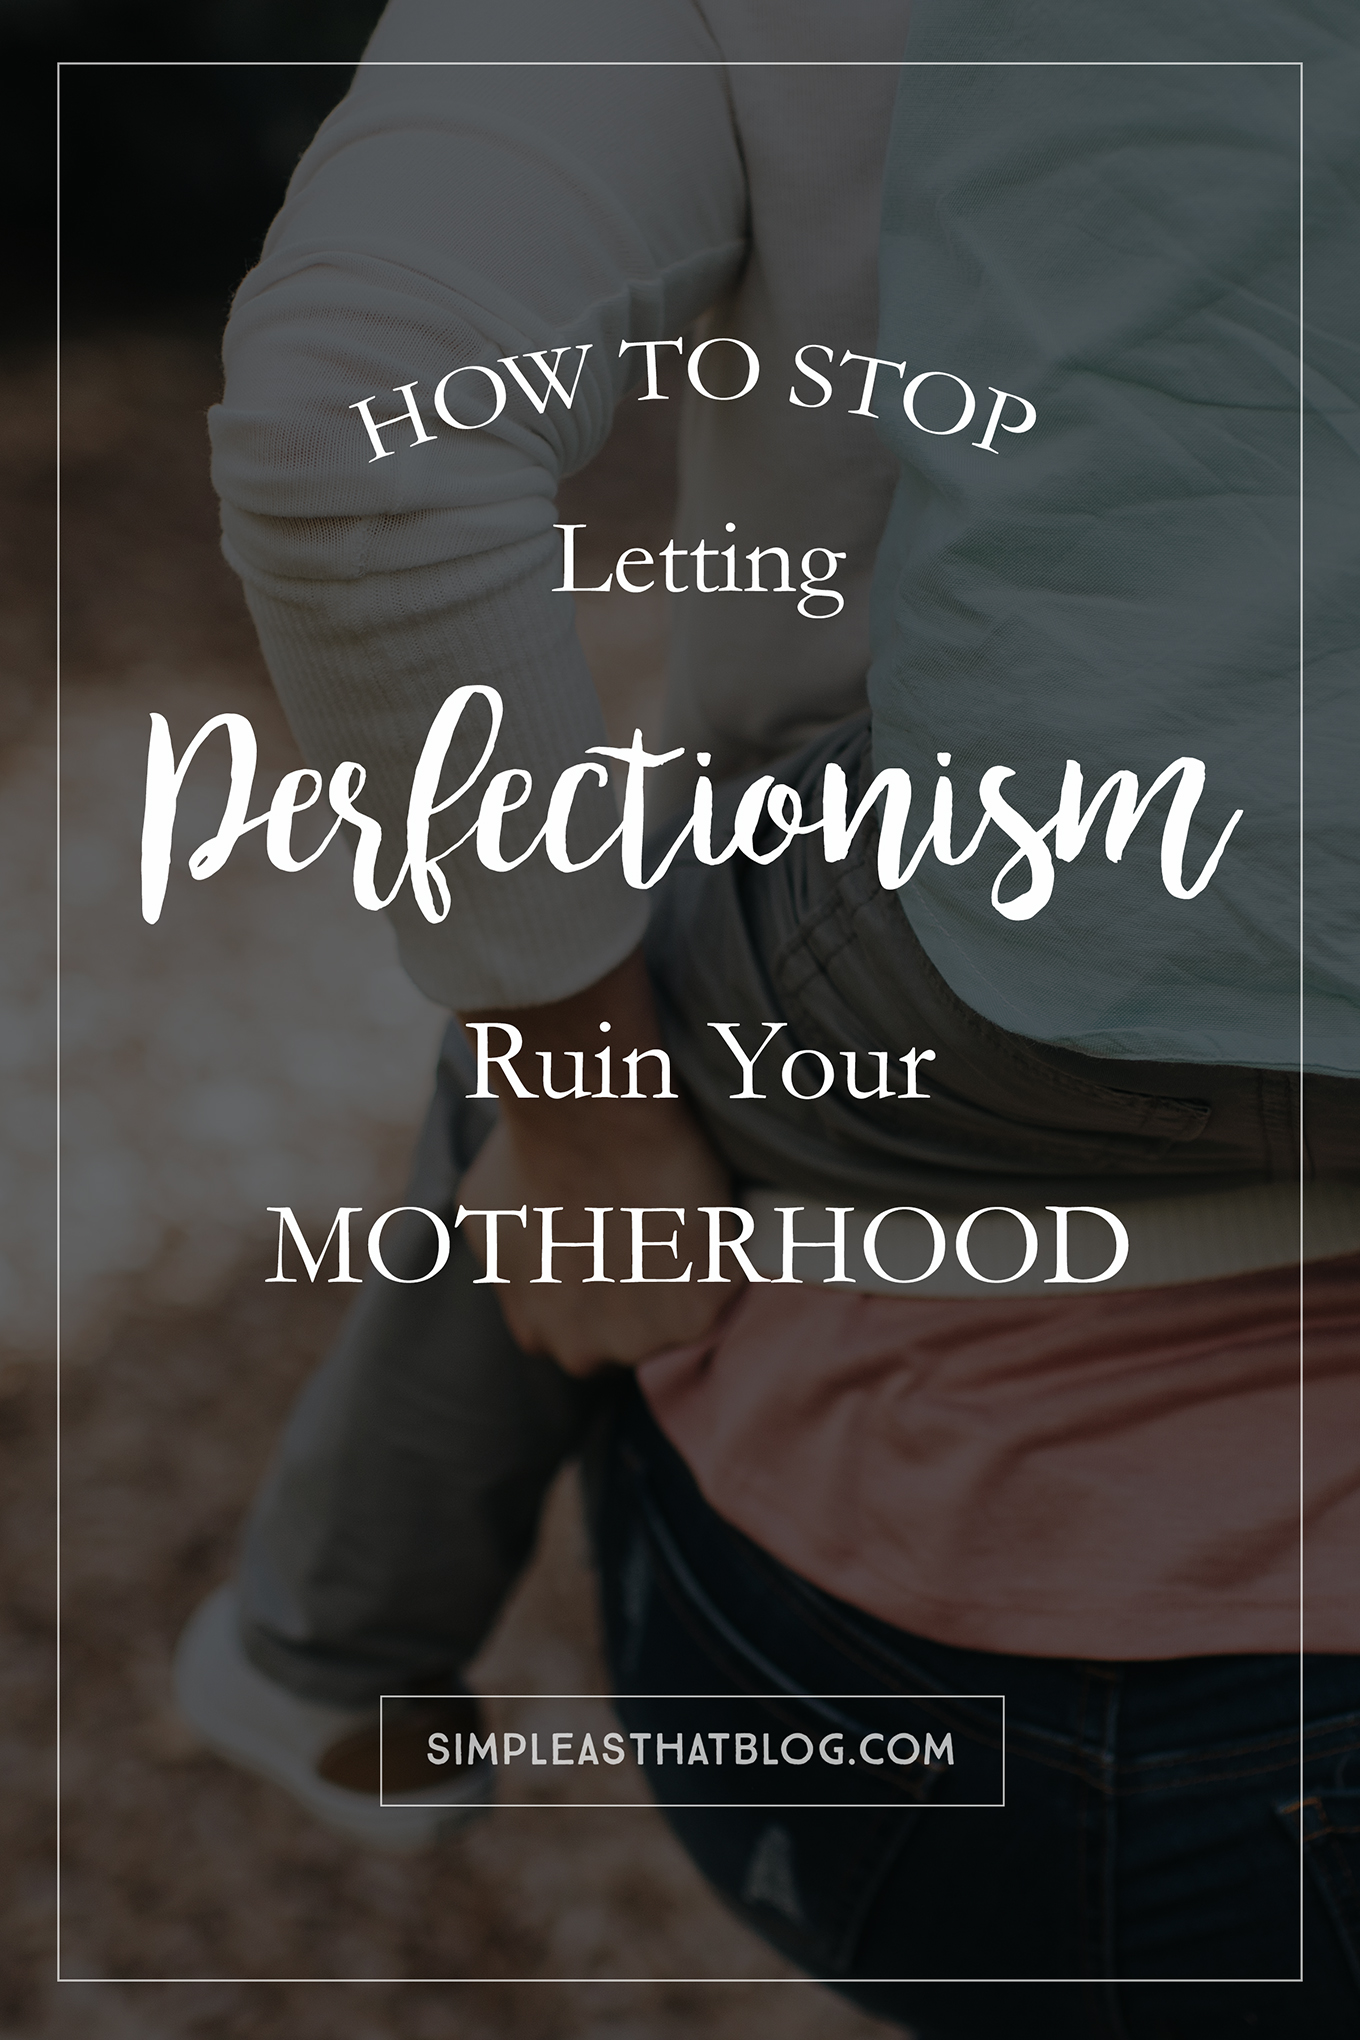 Your kids don't need a perfect mom, they need a happy mom. How to stop letting perfectionism ruin your motherhood.